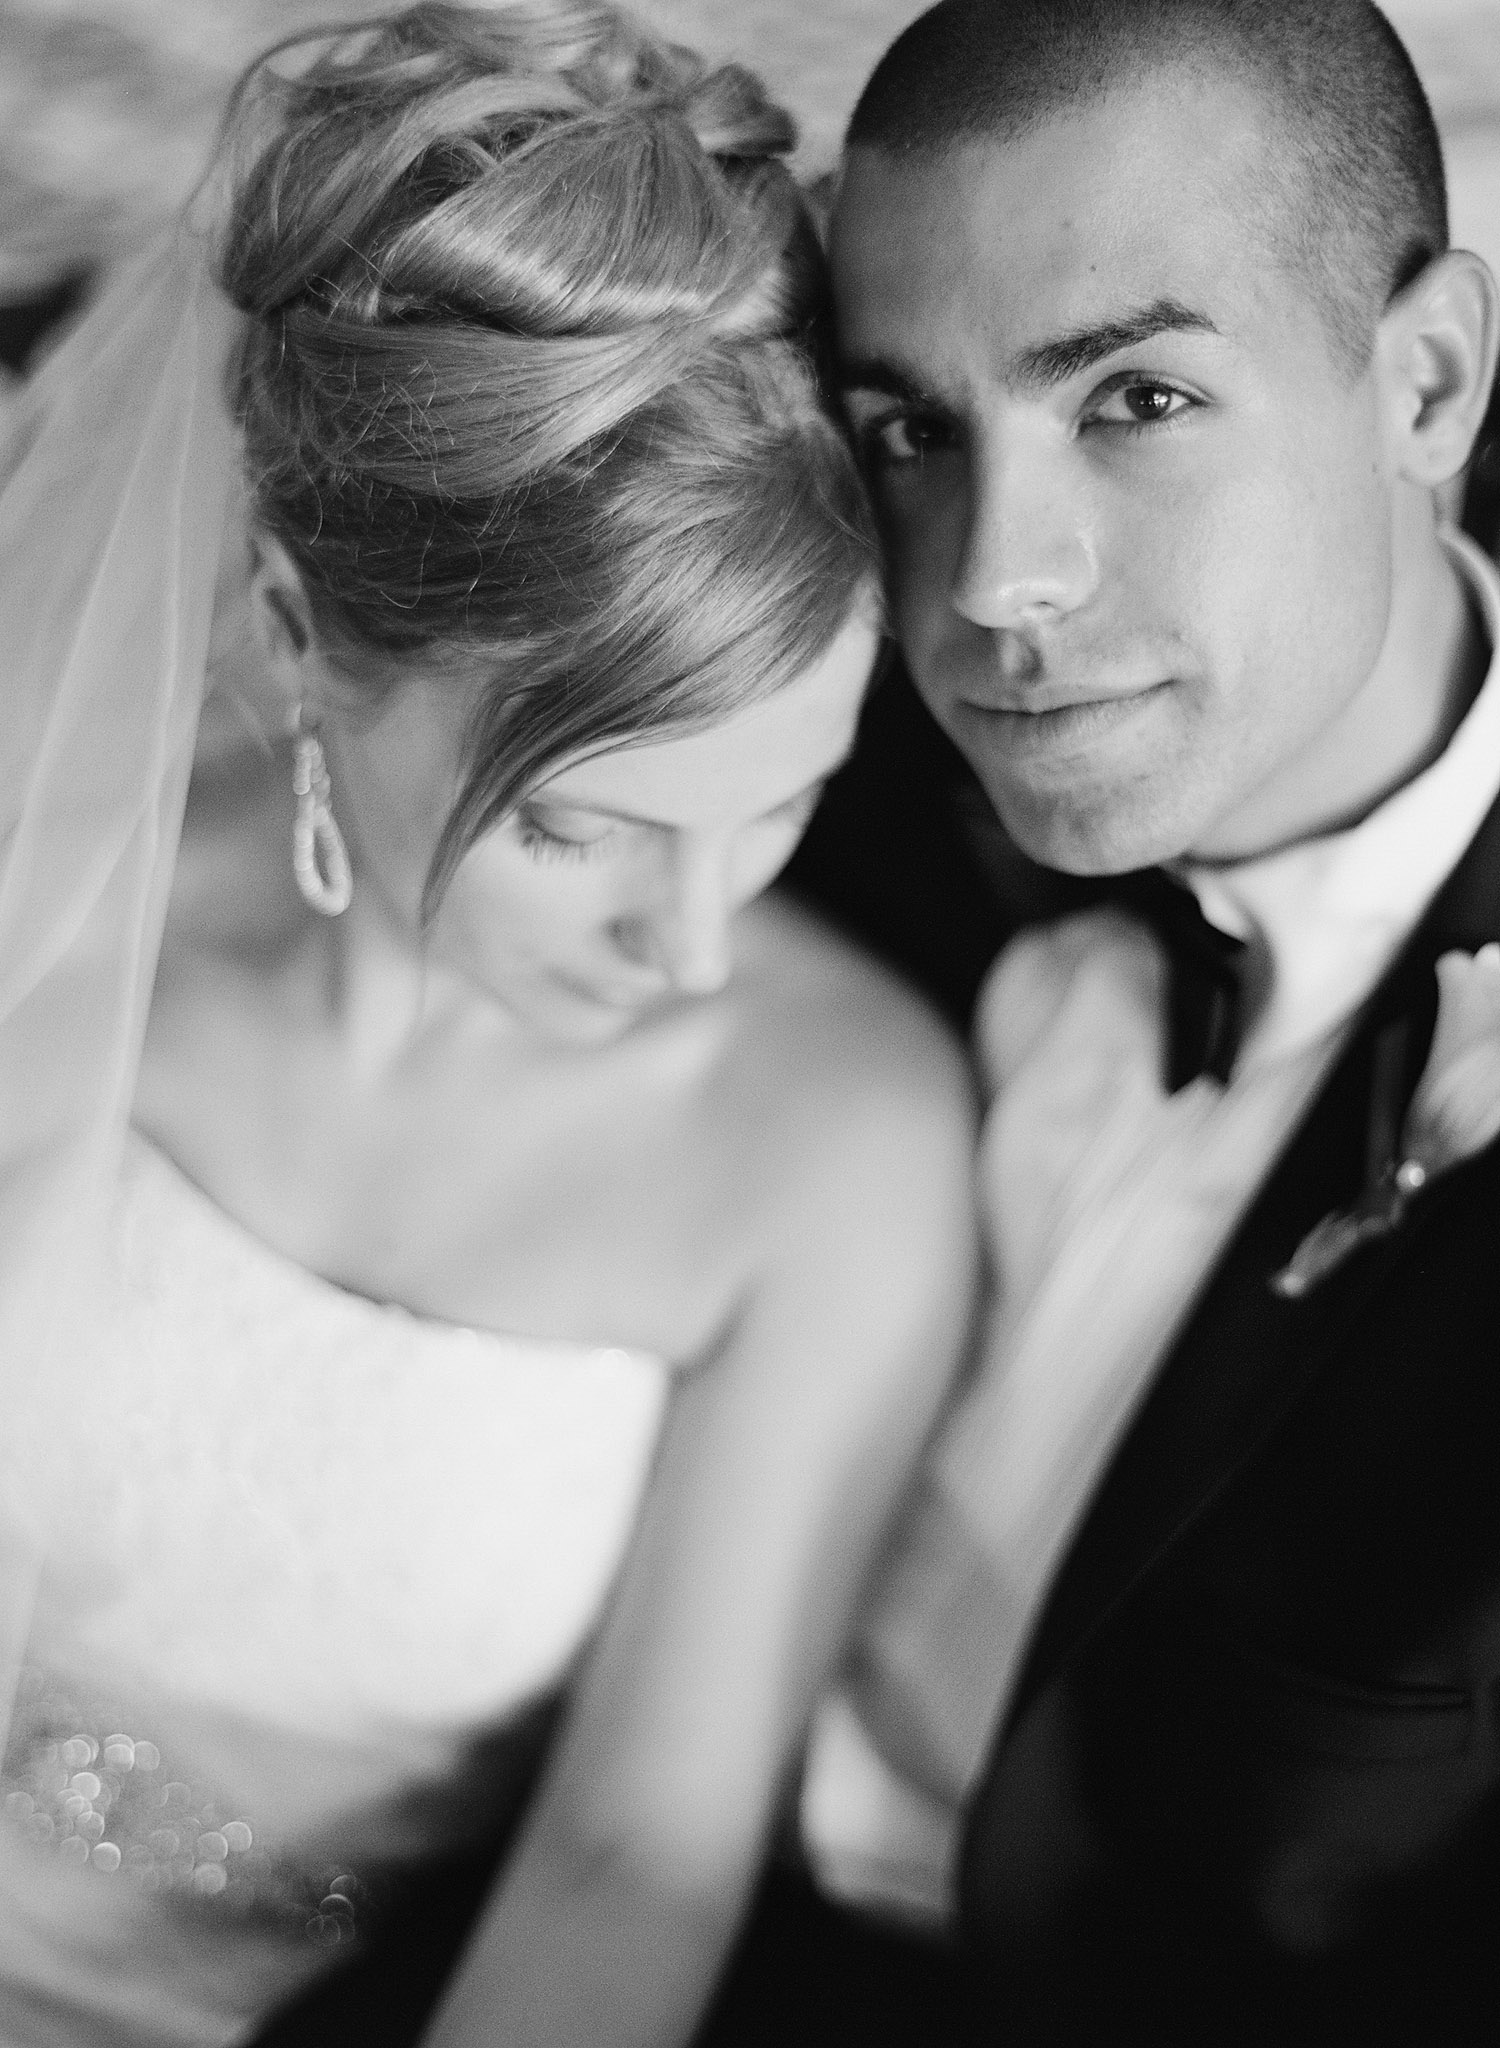 Destination wedding photographer LExia Frank photographs a modern wedding in Vieques Island Puerto Rico at the W hotel on film, as she is a film photographer shooting destination weddings worldwide